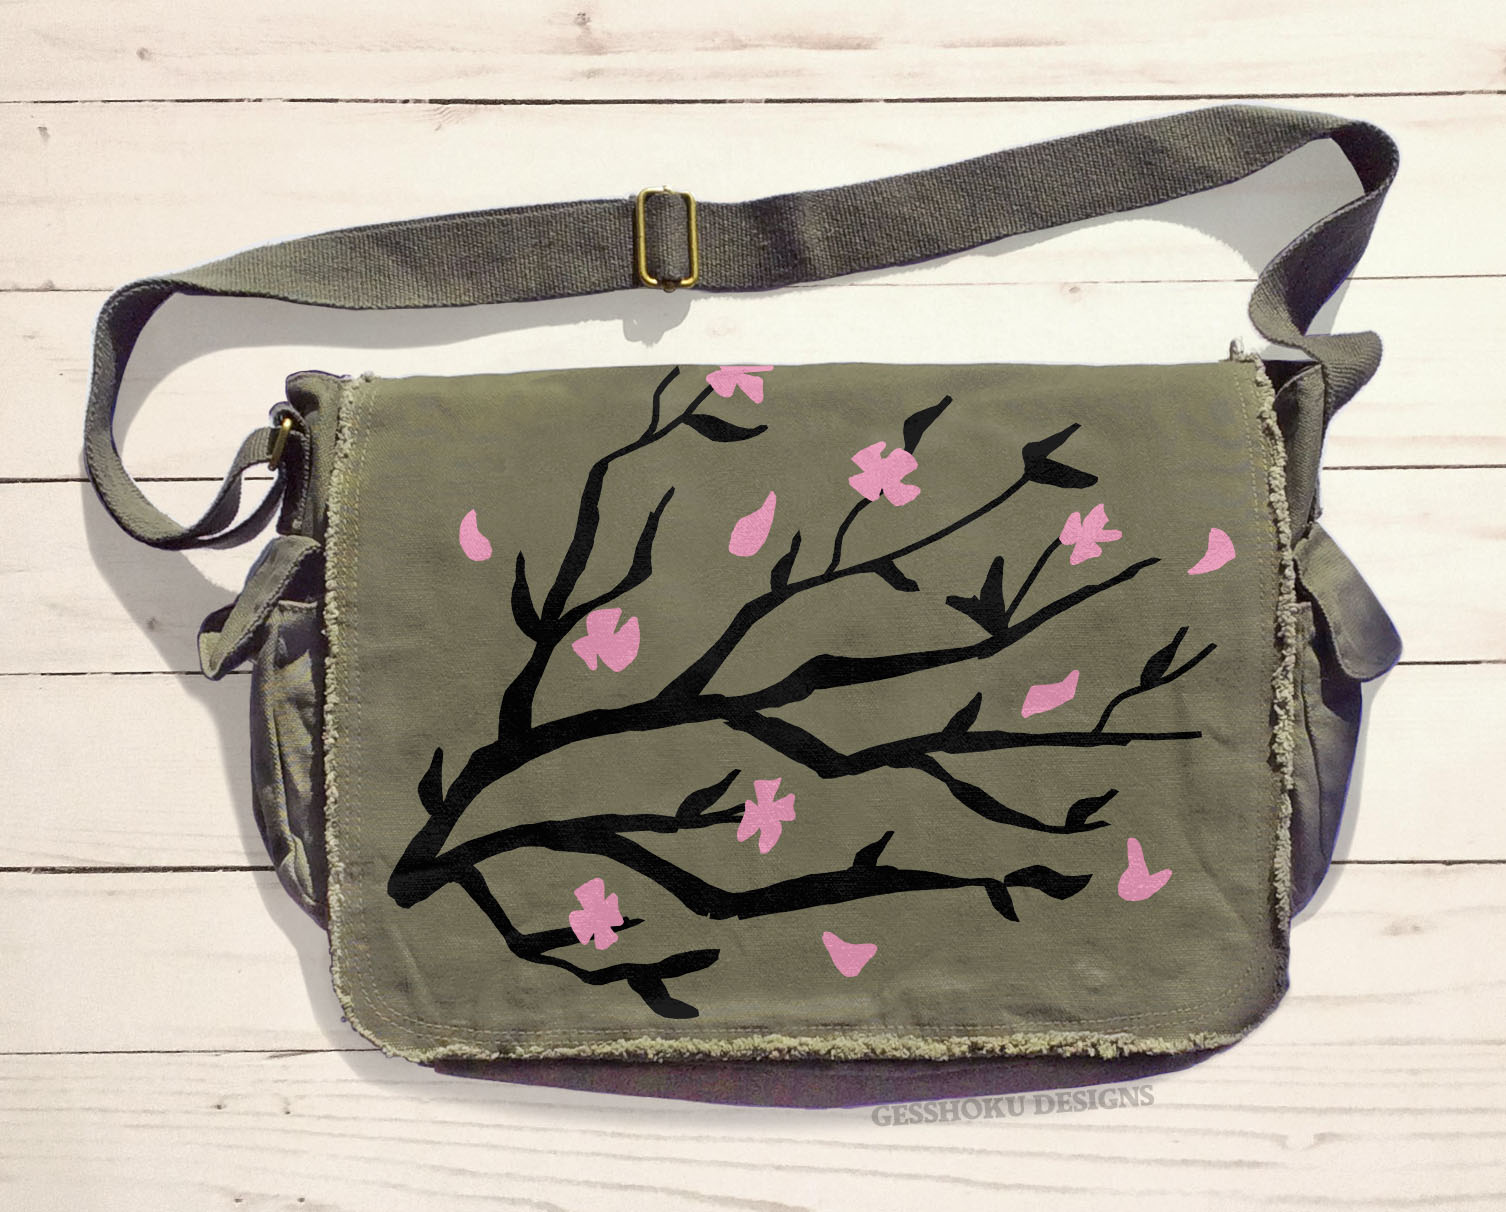 Sakura Cherry Blossoms Messenger Bag - Khaki Green